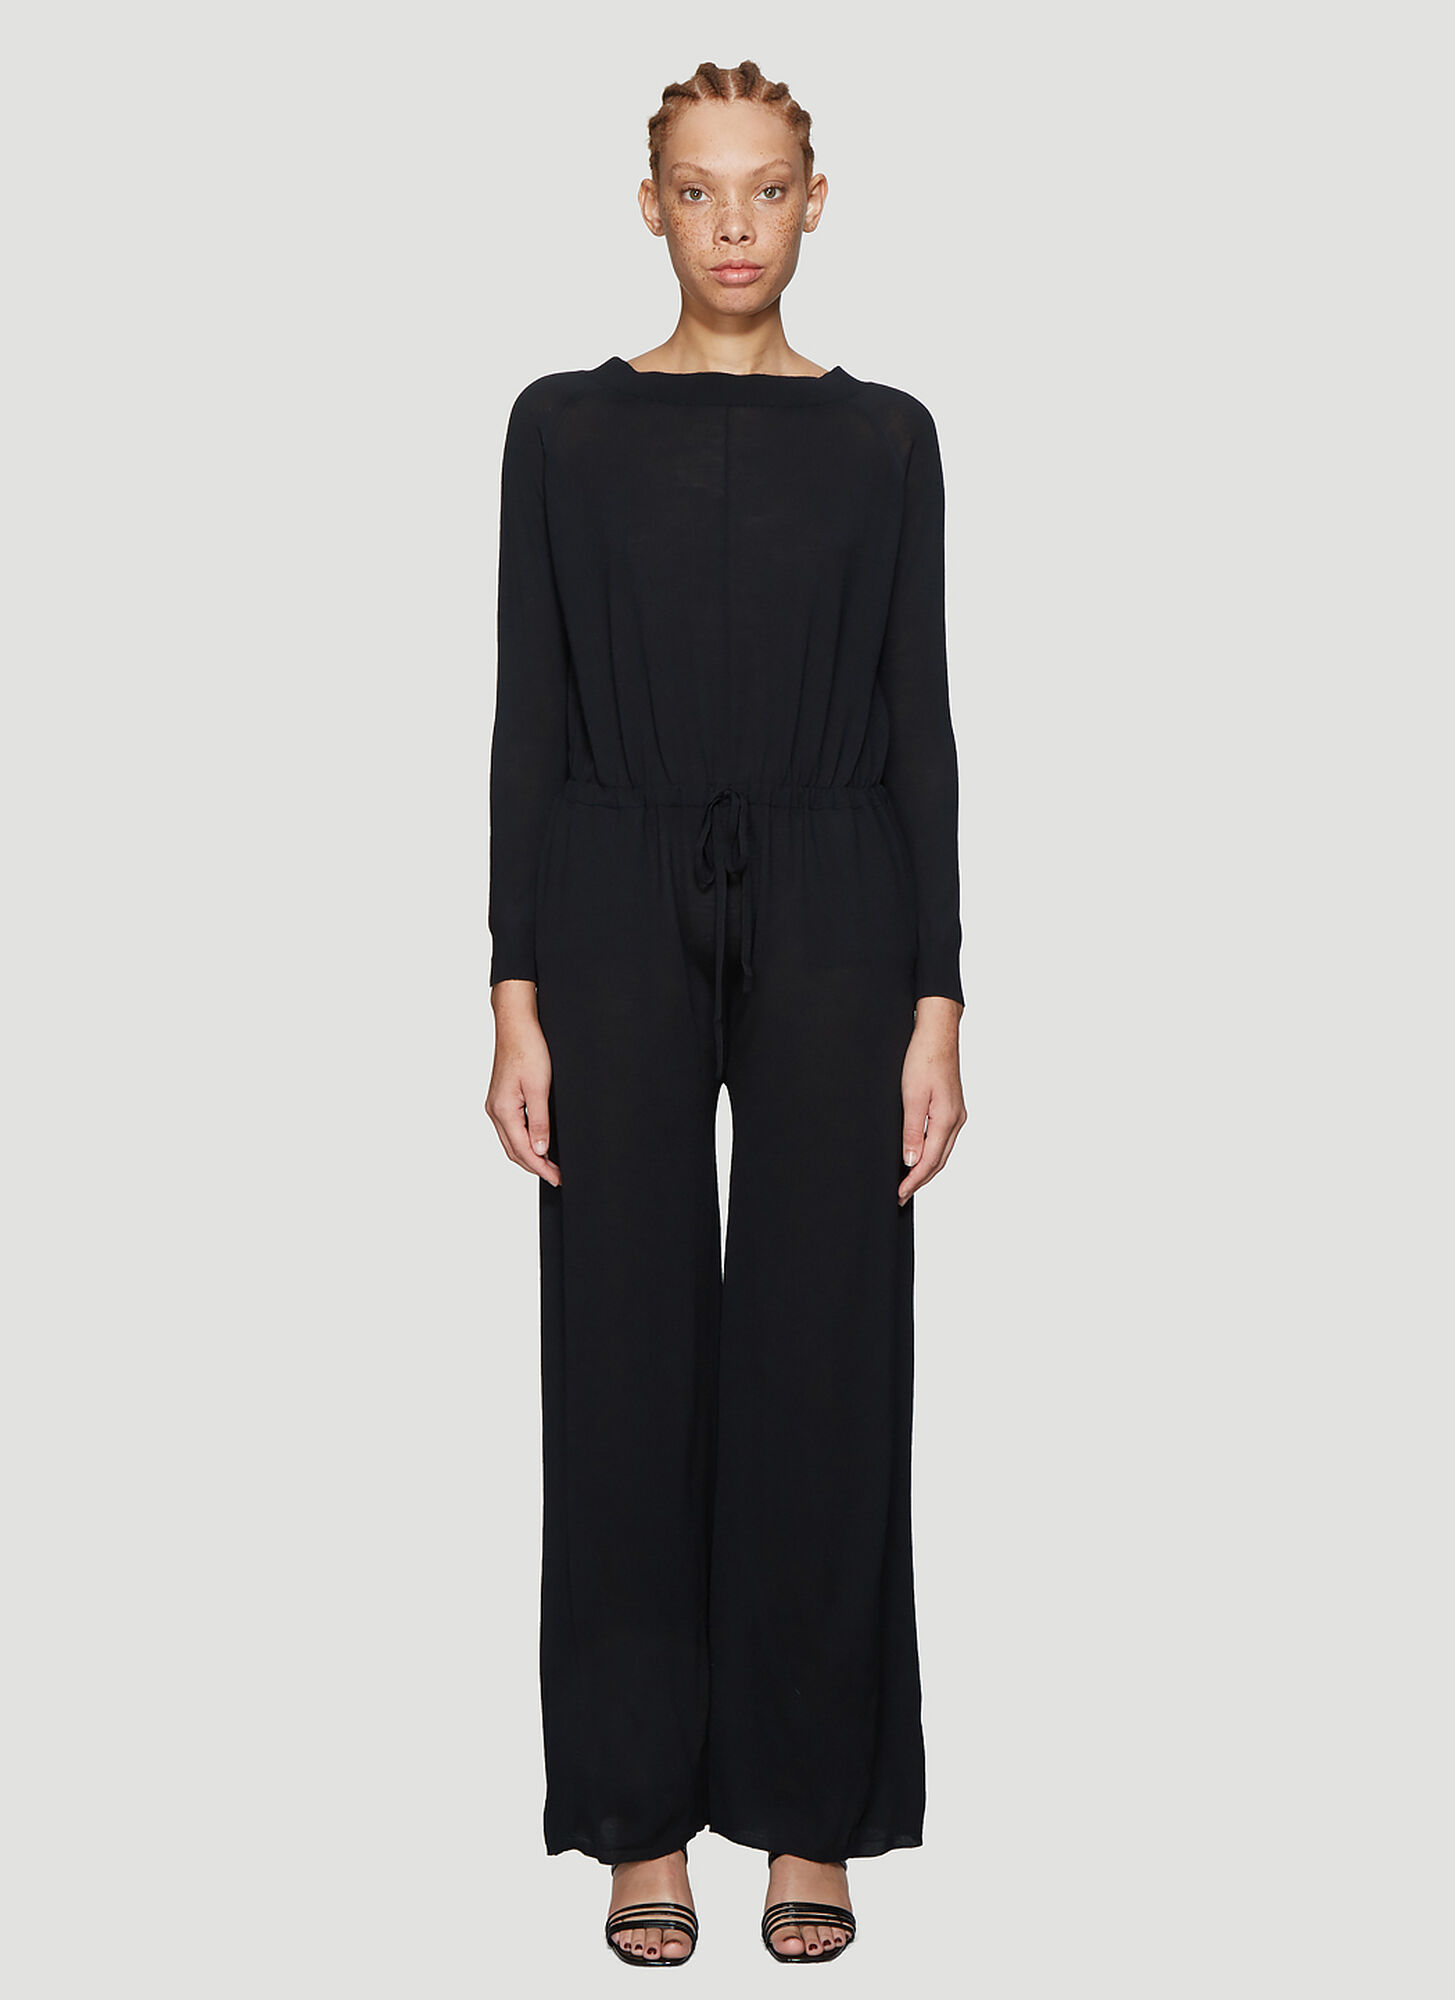 Stella McCartney Wool Knit Jumpsuit in Black